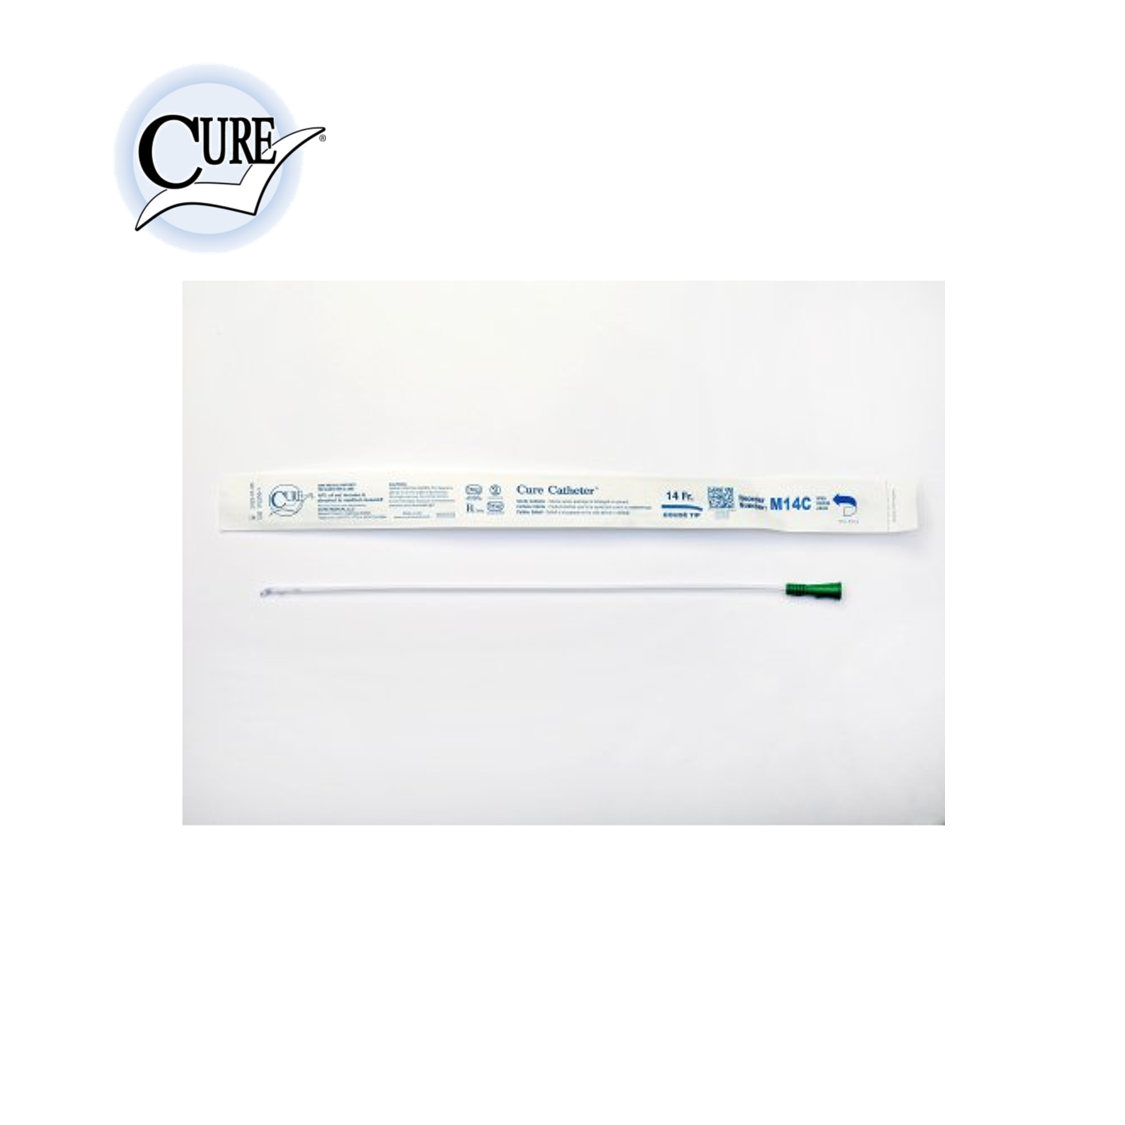 Urethral Catheter Cure Catheter™ Coude Tip